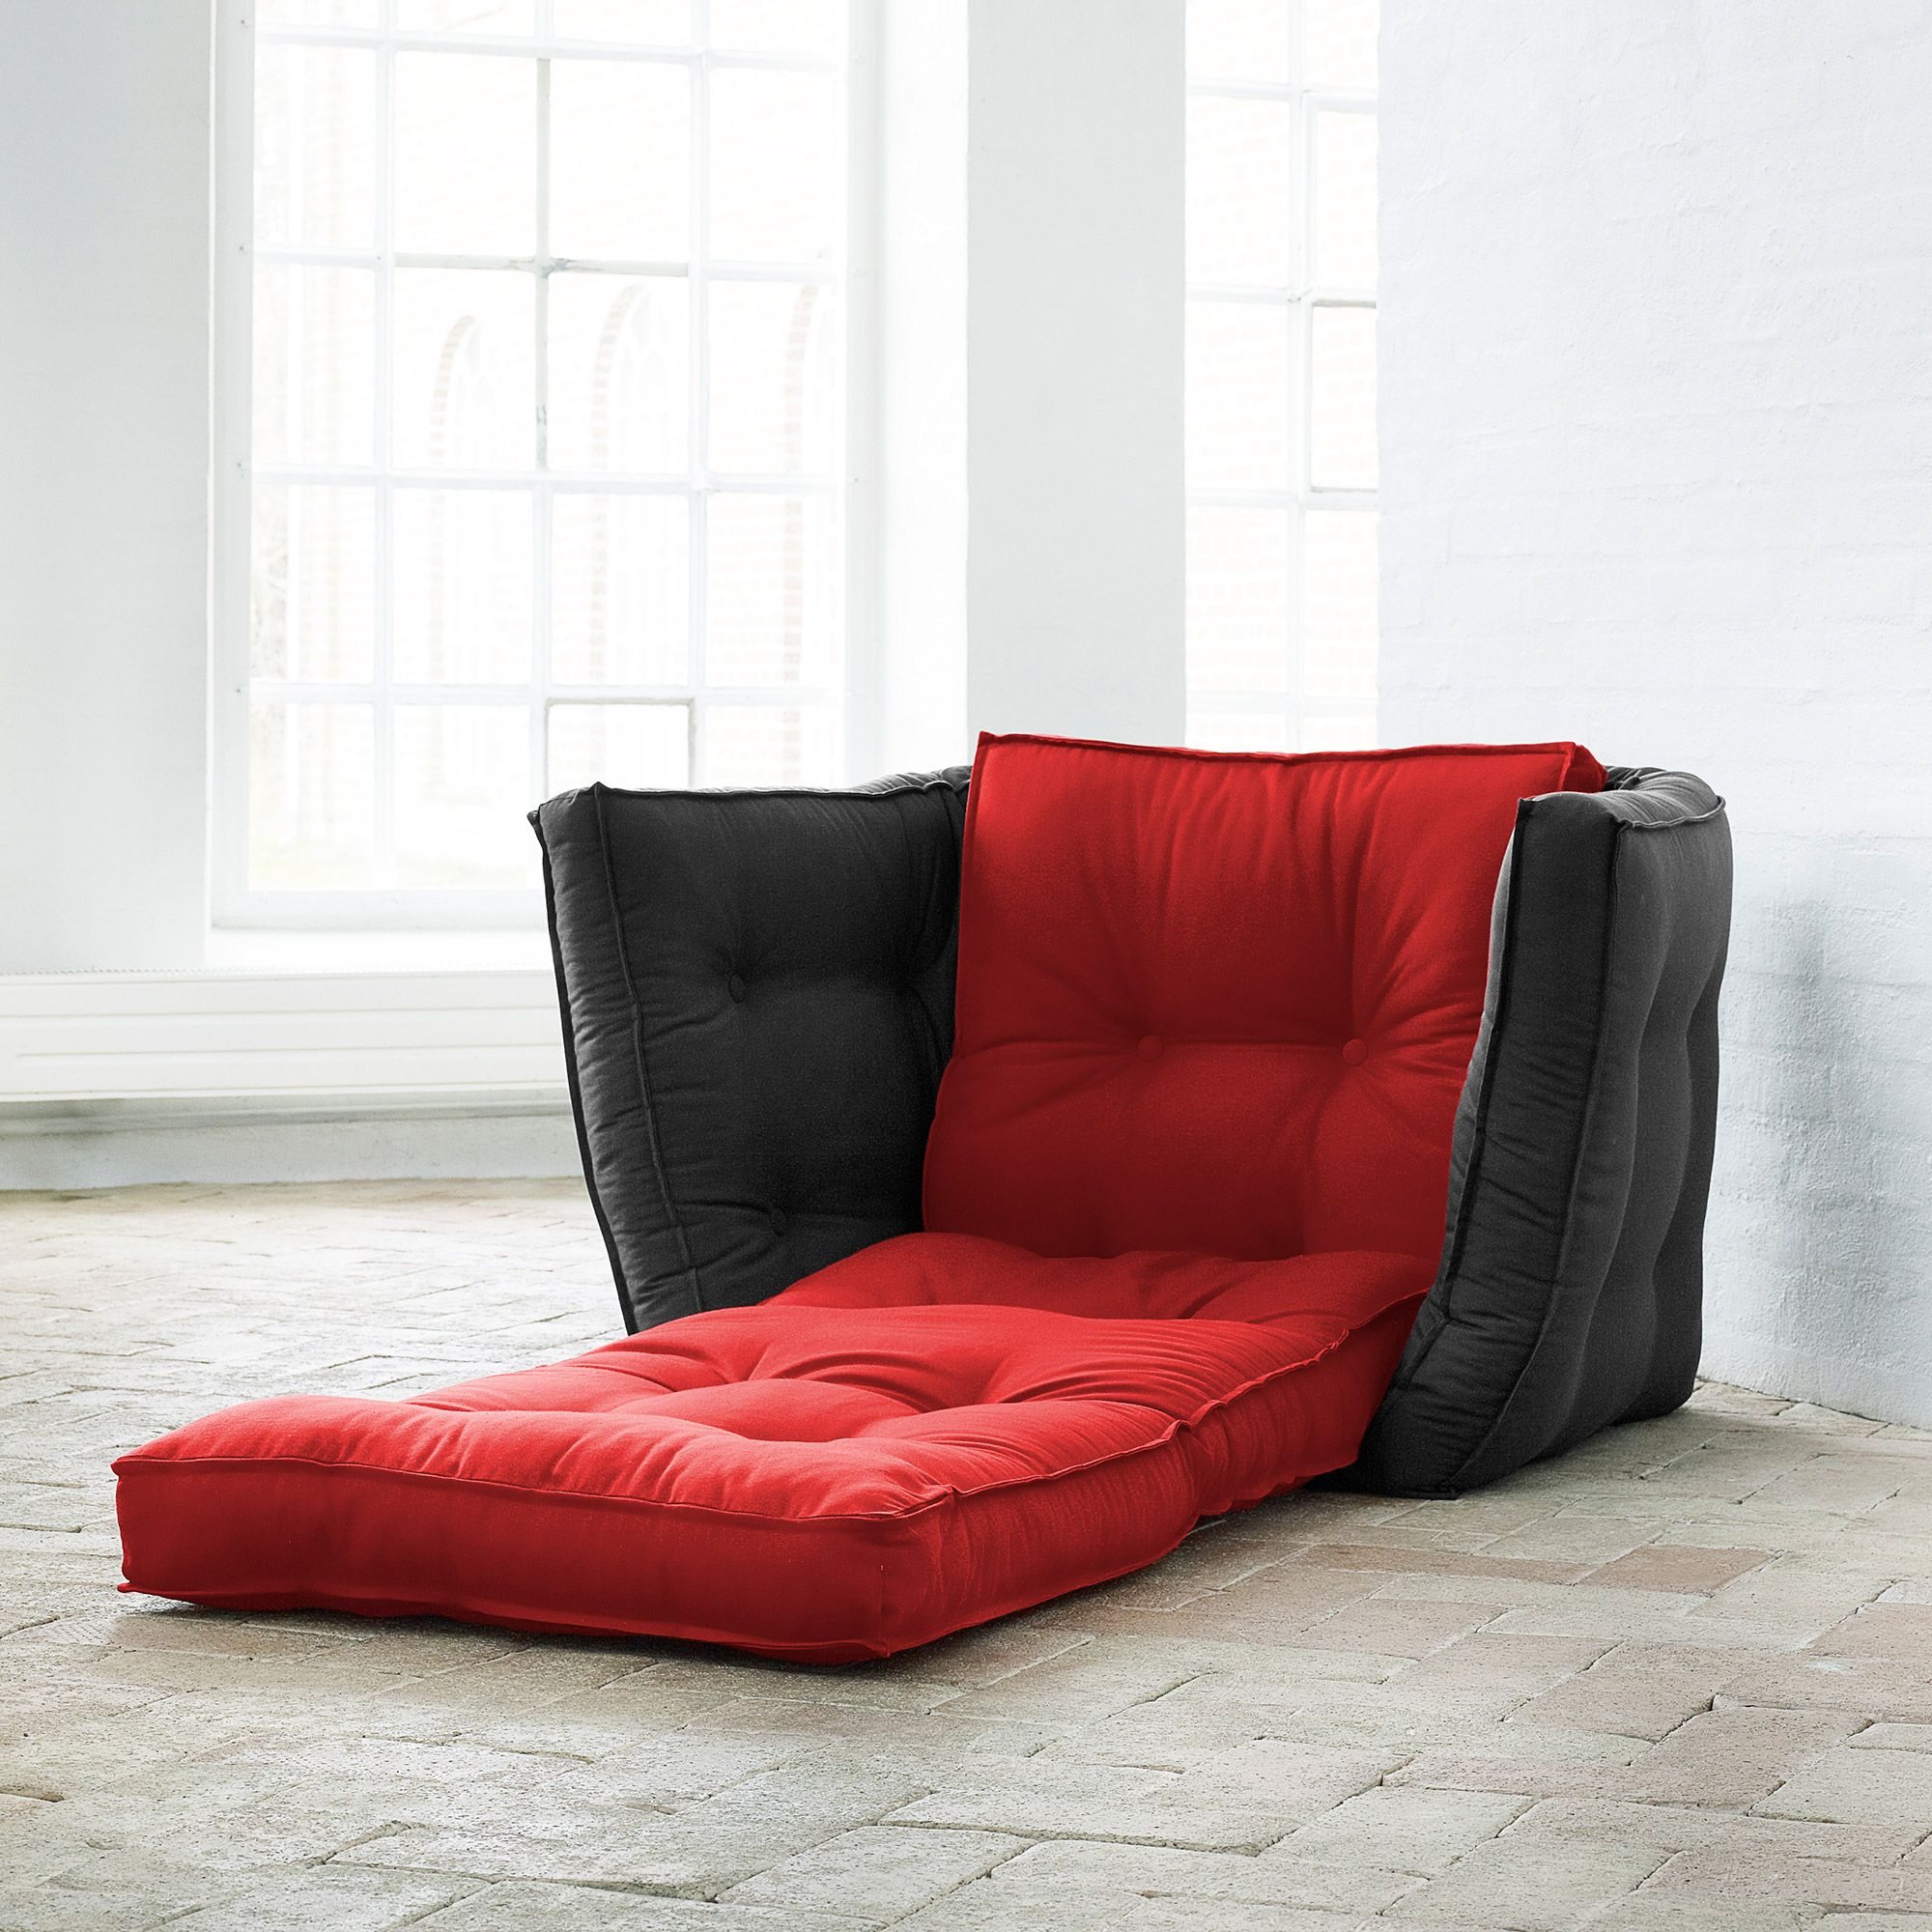 style today fixed furniture trends bed and simple futon chair best shipping victor living modern of